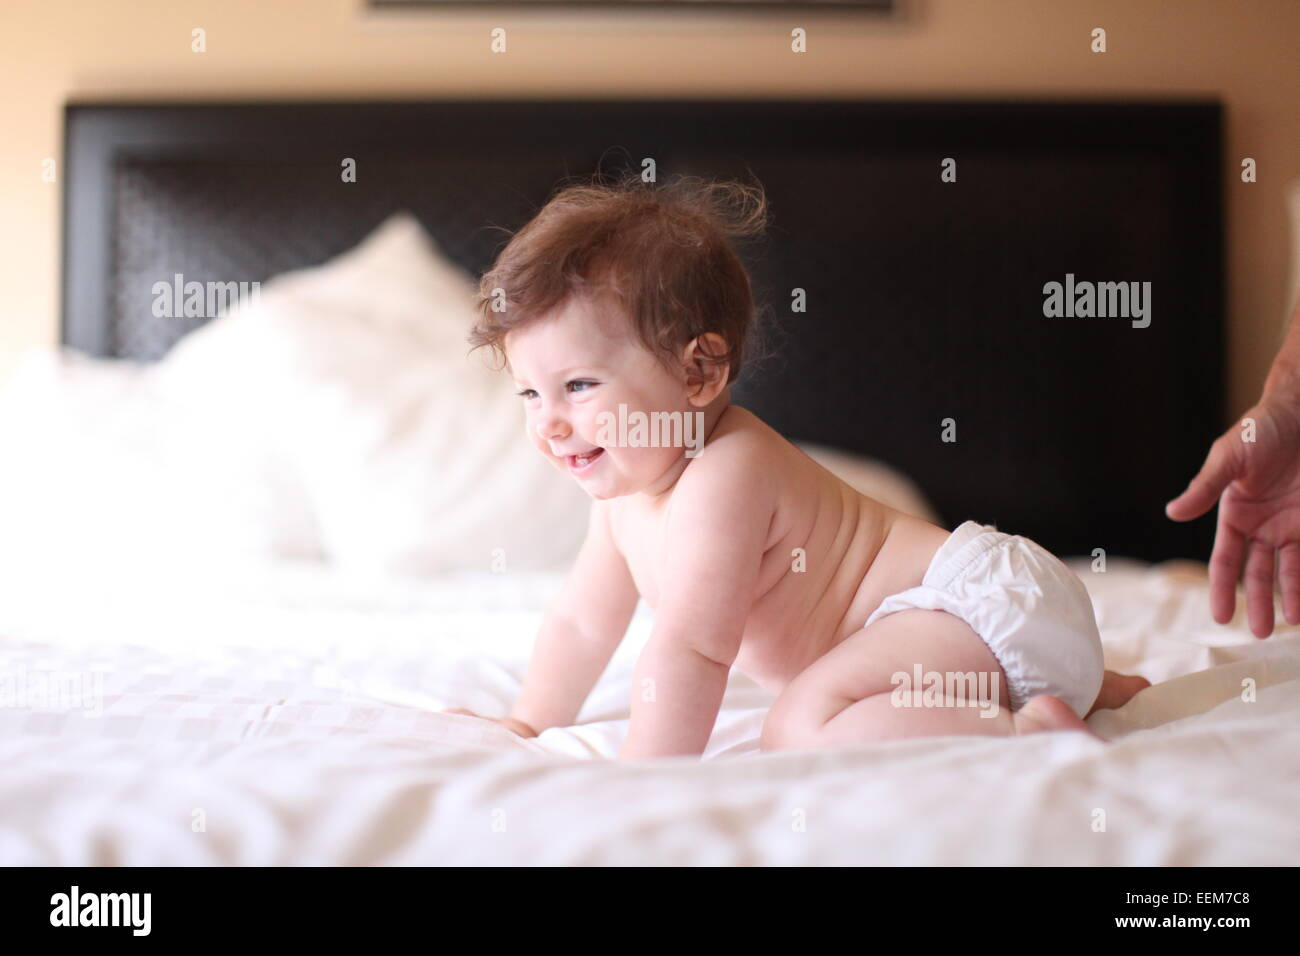 Baby girl crawling on bed - Stock Image